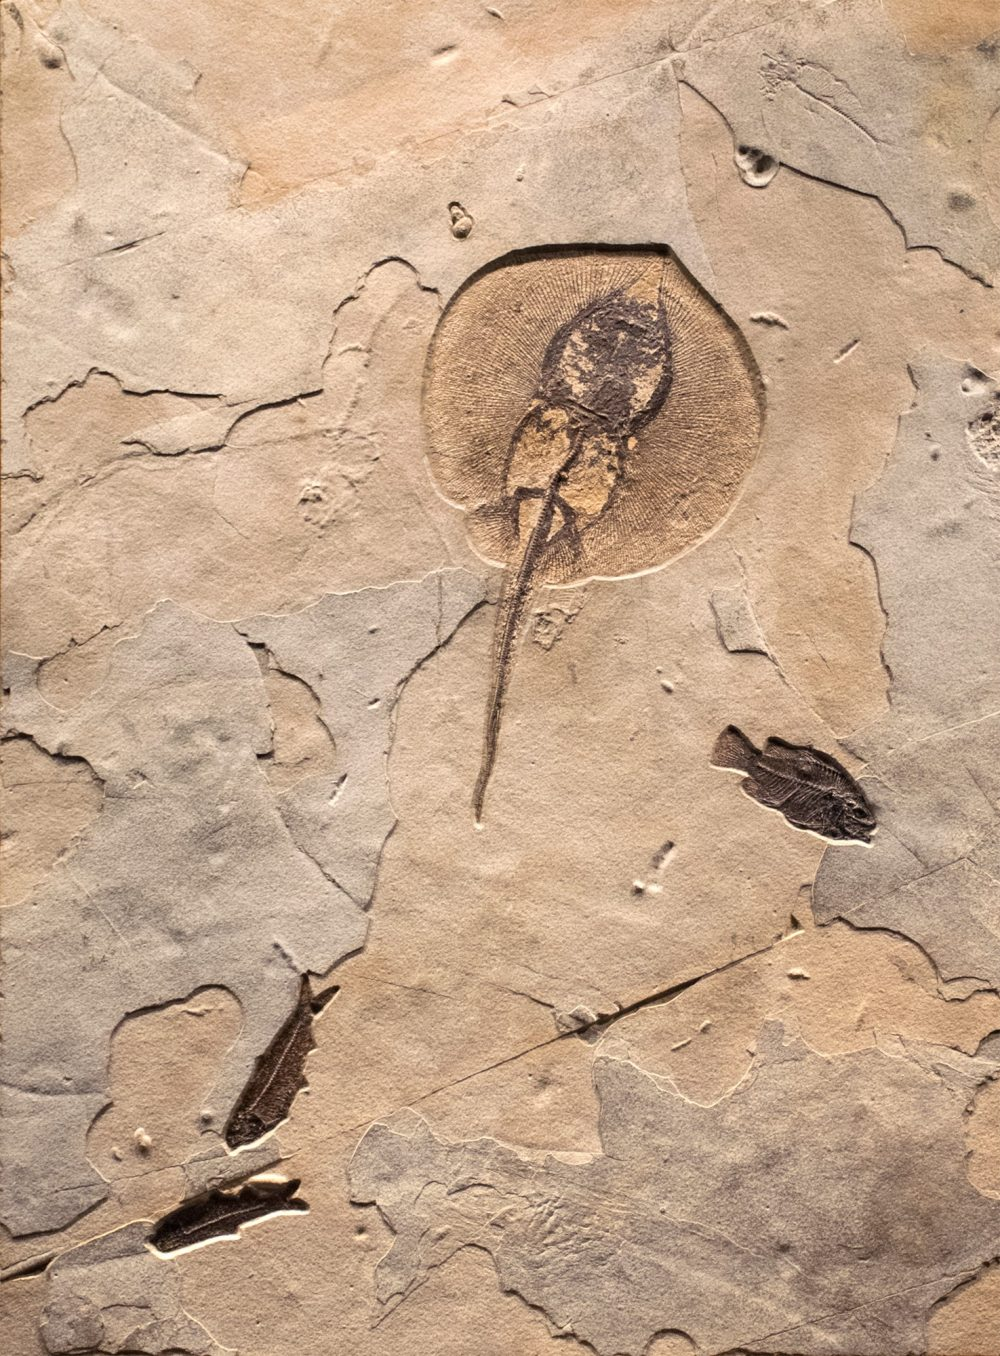 Fossil Collector Mural 02_MS170918500AM